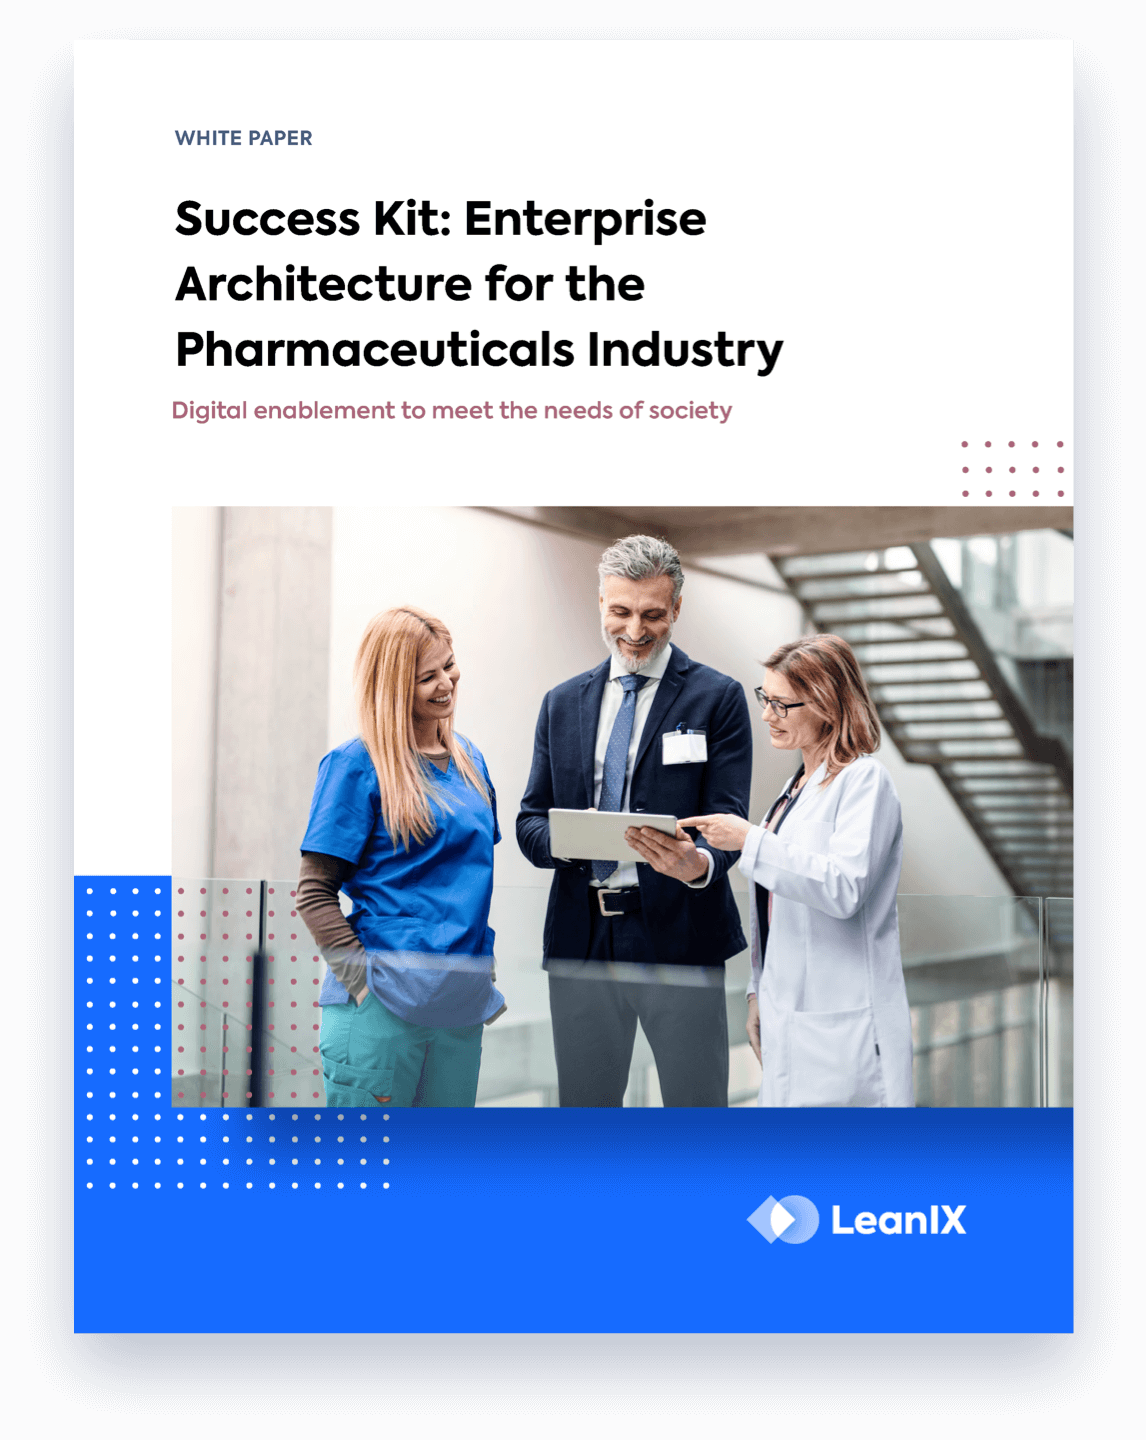 EN-WP-SuccessKit_Pharma_Industry-Landing_Page_Preview_Image